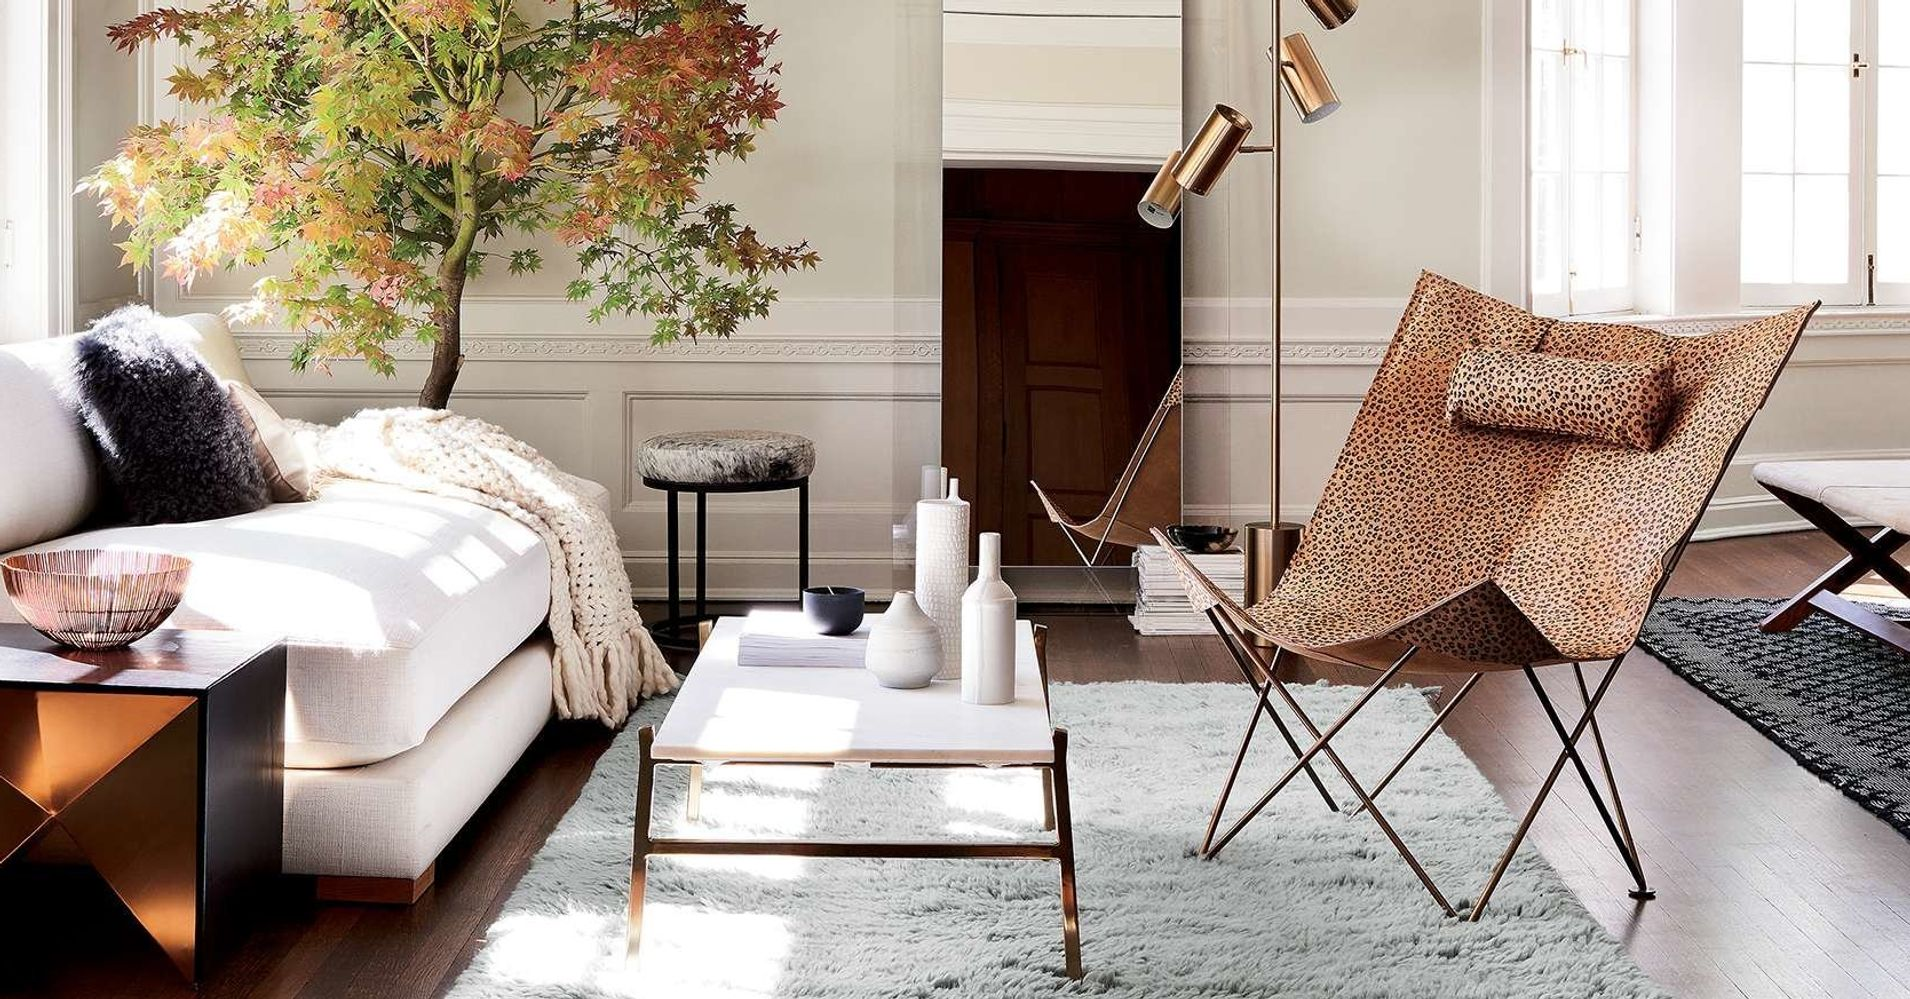 14 furniture stores like west elm to buy mid century modern home decor huffpost. Black Bedroom Furniture Sets. Home Design Ideas